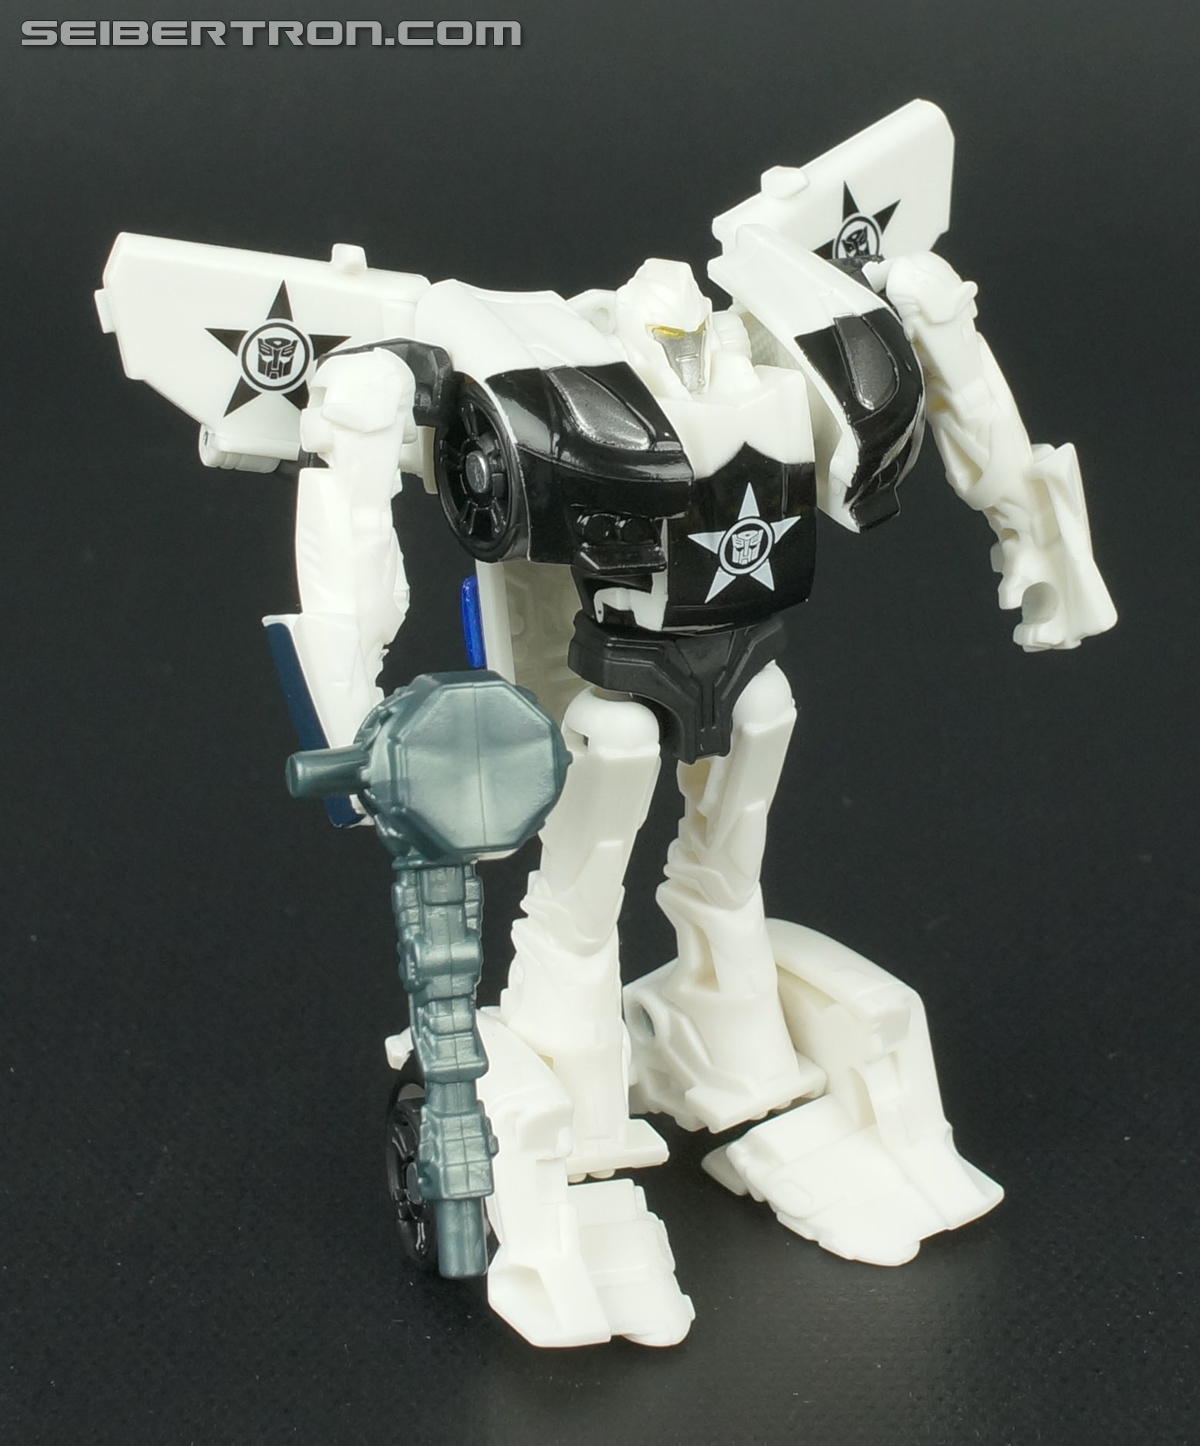 Transformers Prime Beast Hunters Cyberverse Prowl (Image #48 of 87)